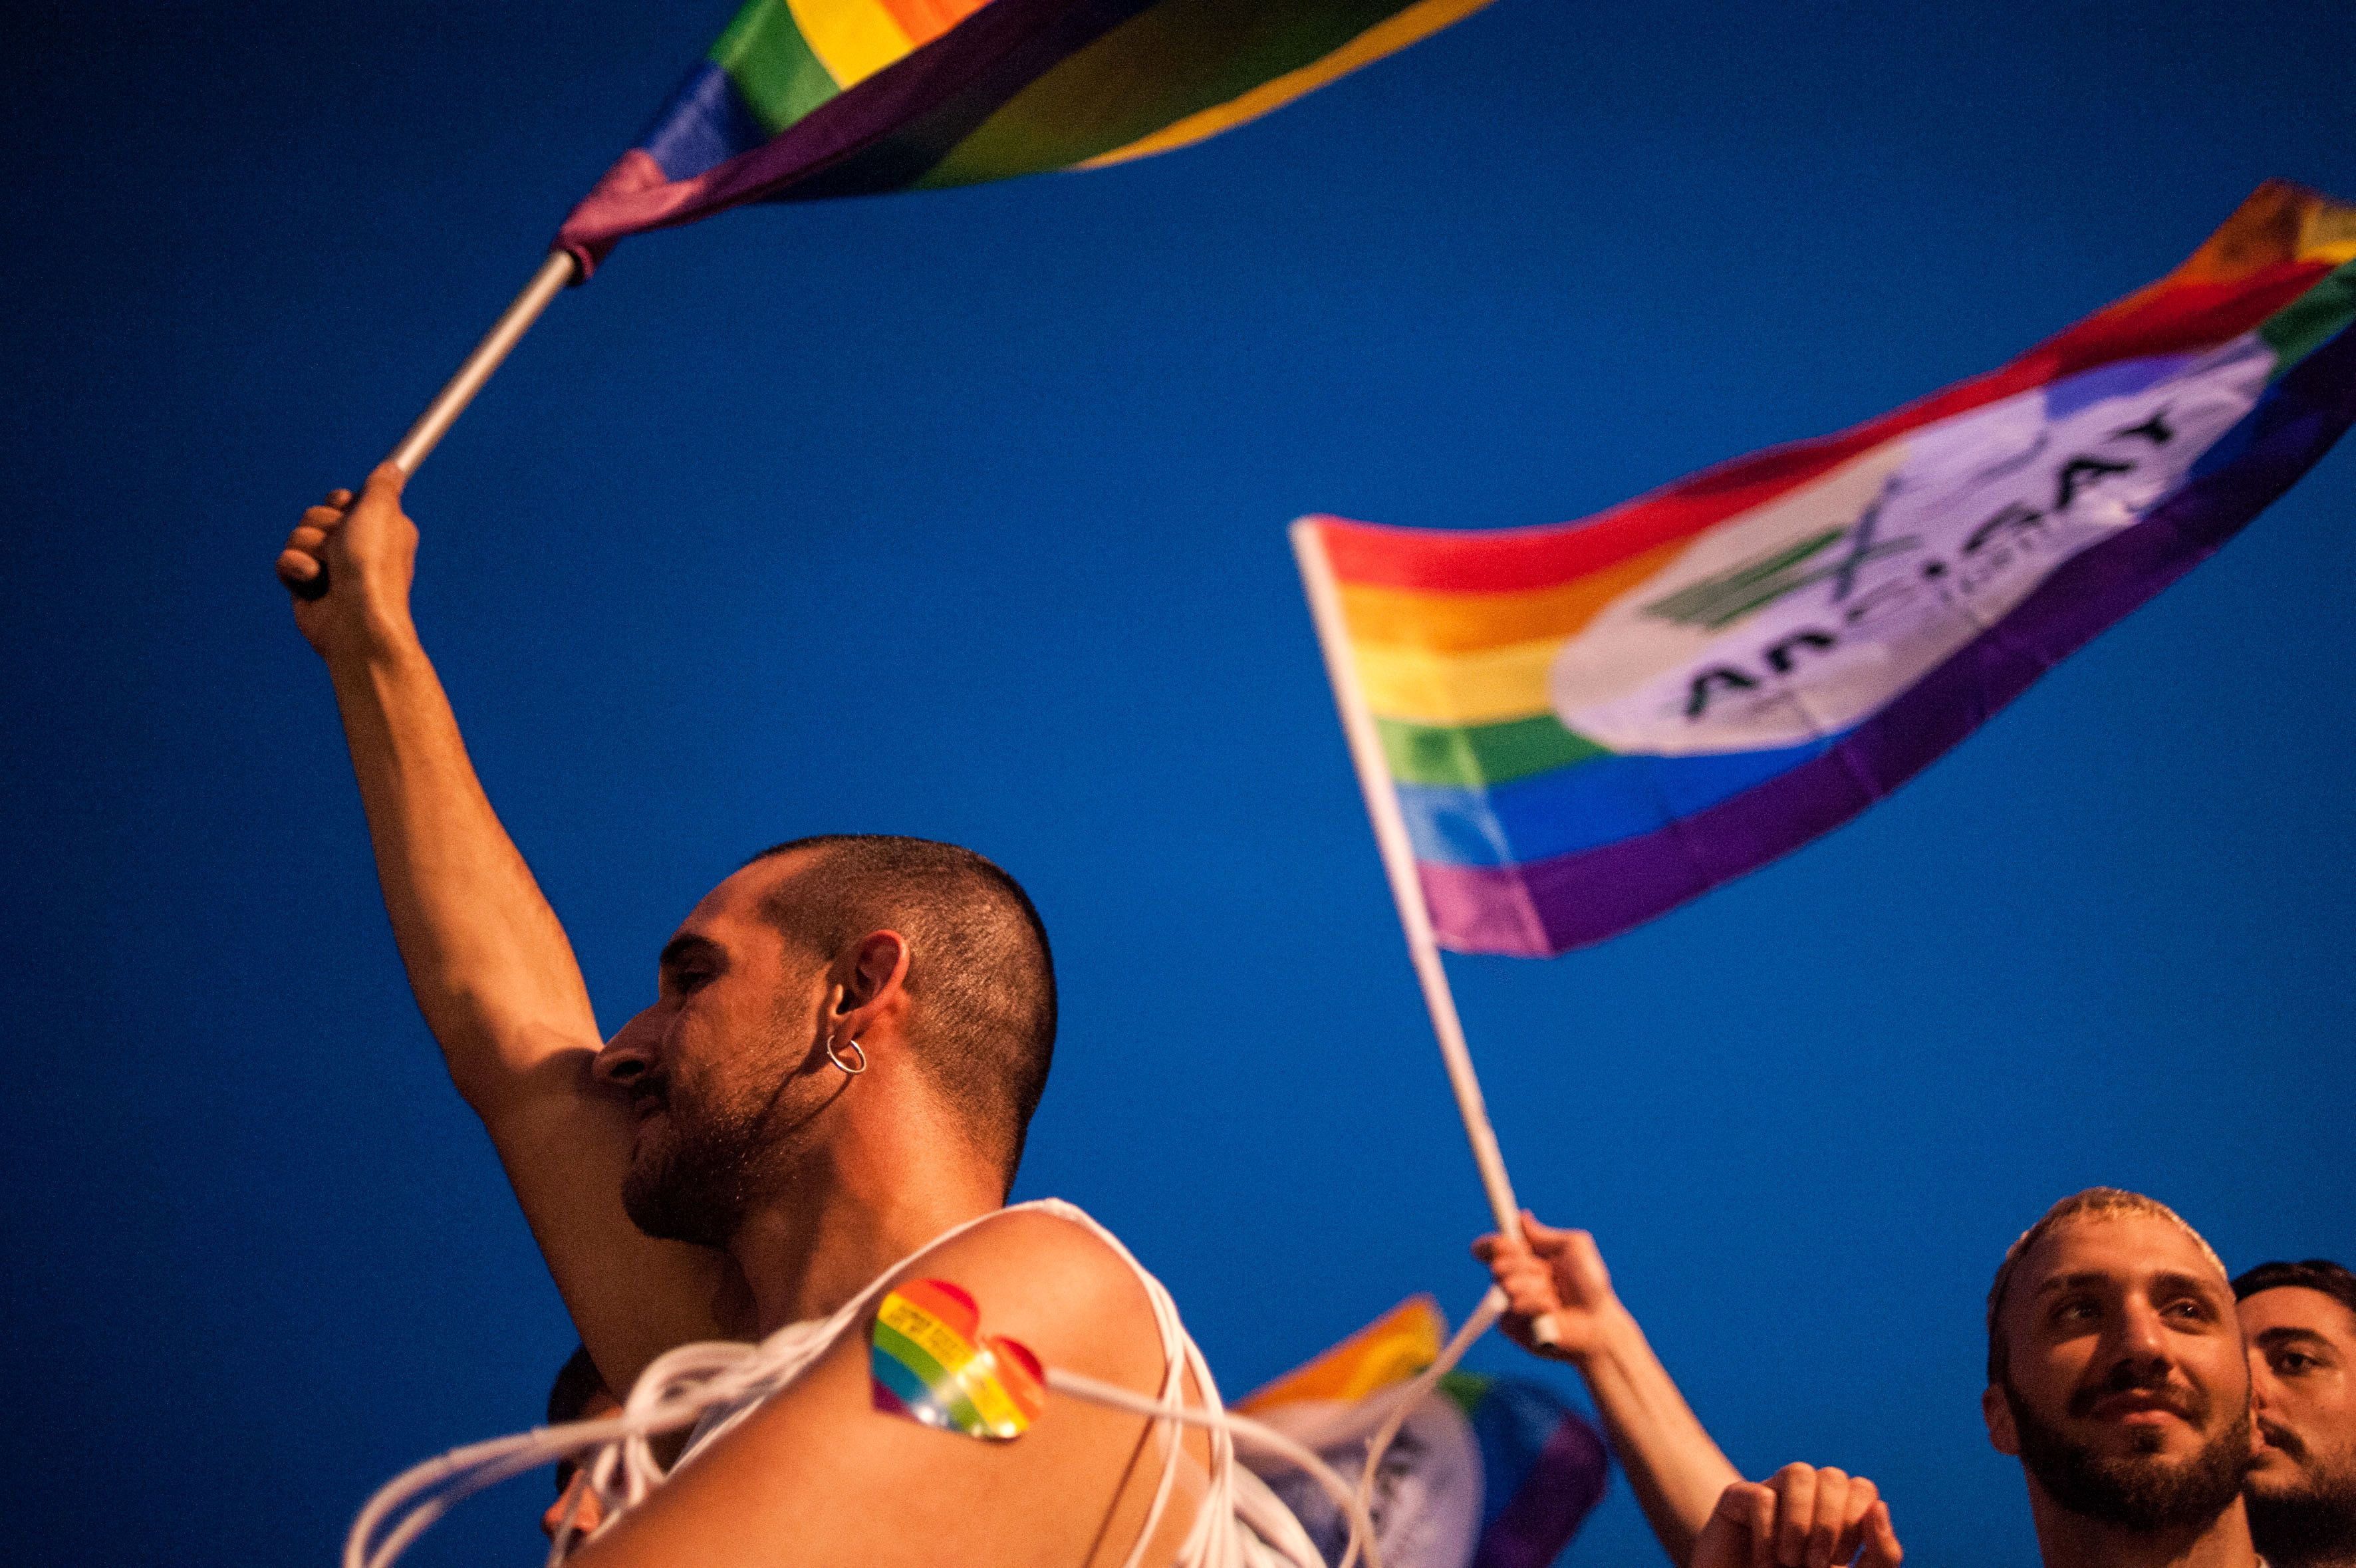 A Pride parade in Salerno, Italy on May 26,